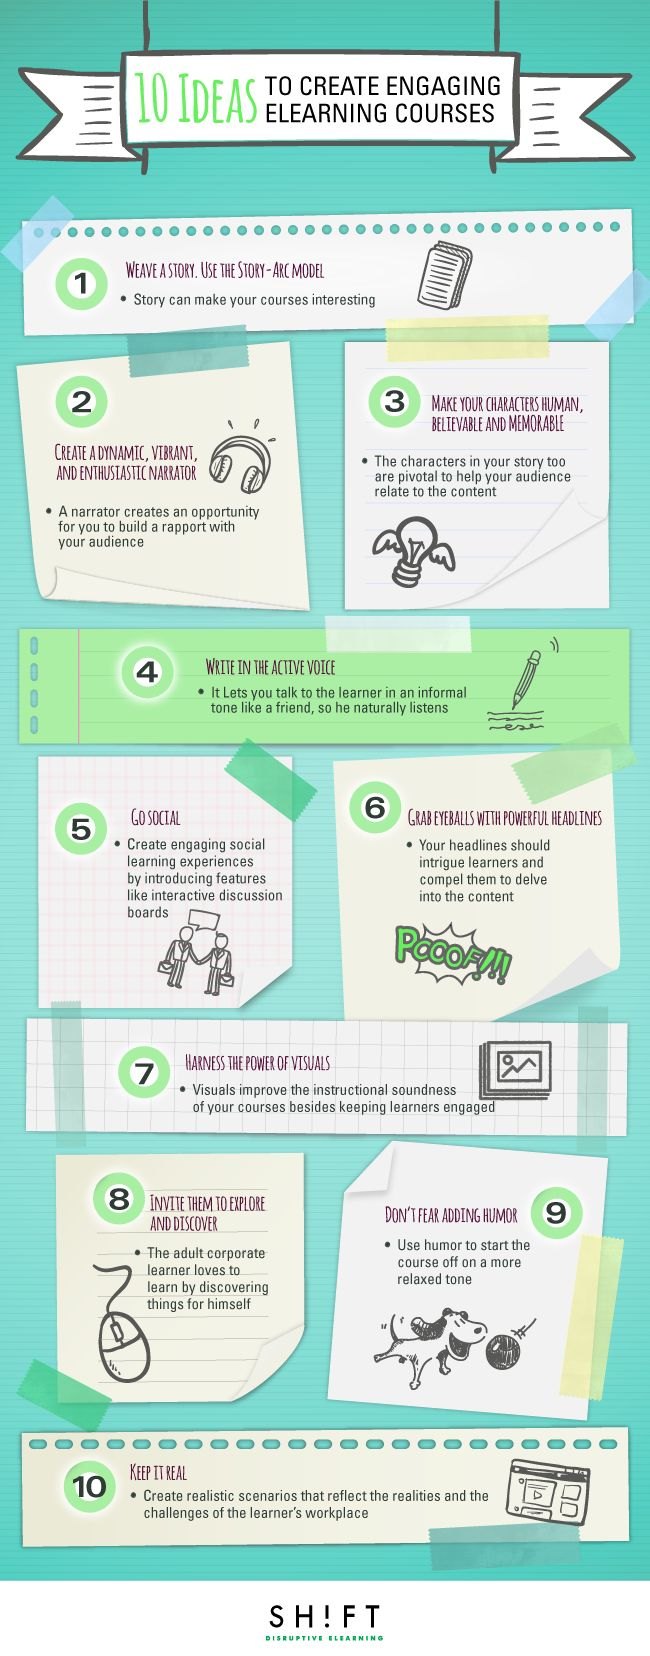 10 Ideas to Create Engaging eLearning Courses Infographic - elearninginfograp...